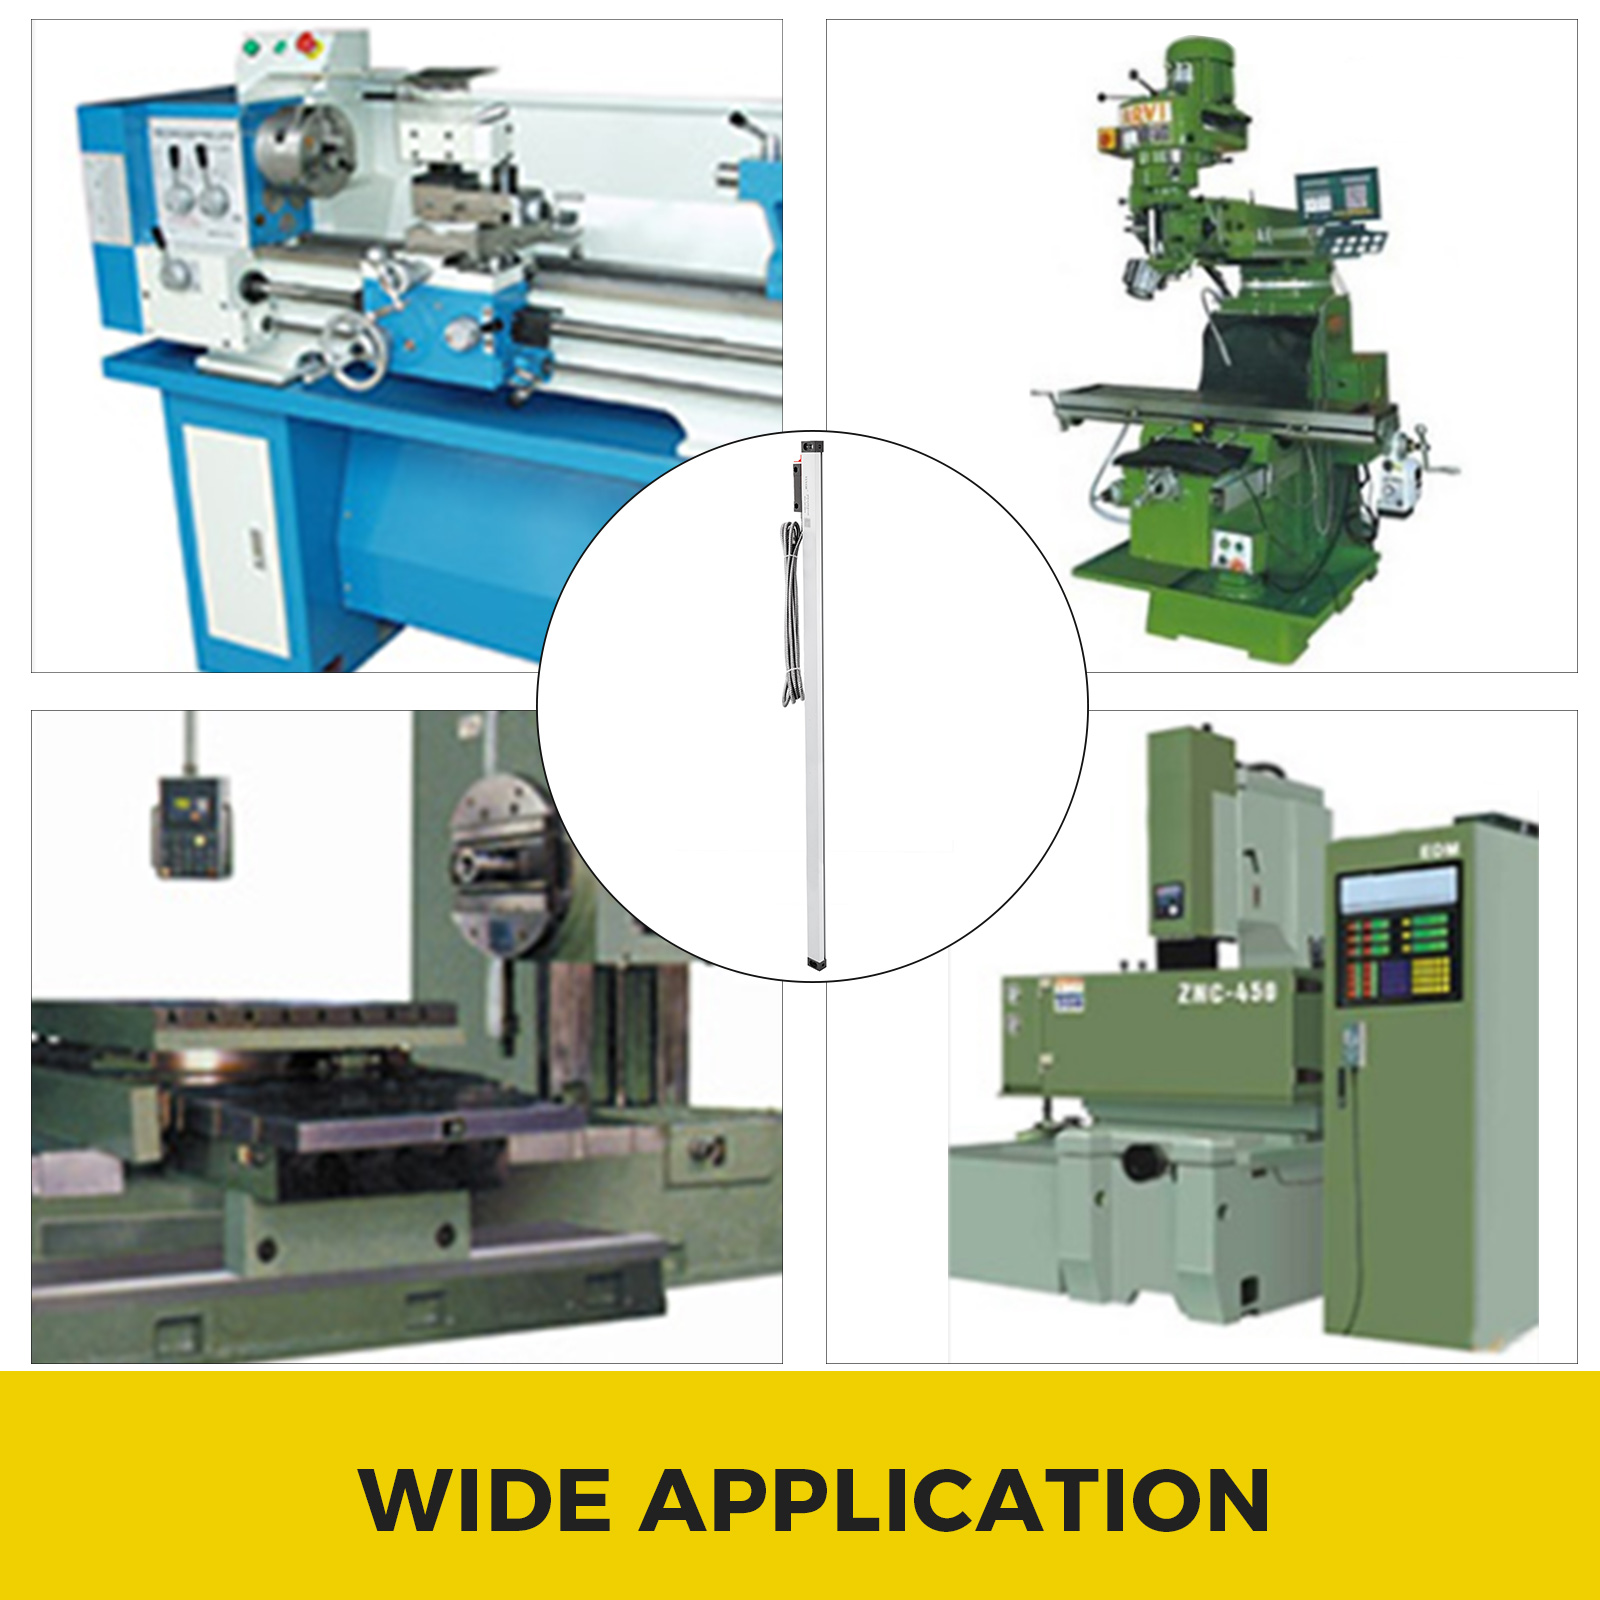 2-3-Axis-Digital-Readout-Linear-Scale-Double-Seal-5-Bearing-System-Grinding thumbnail 235